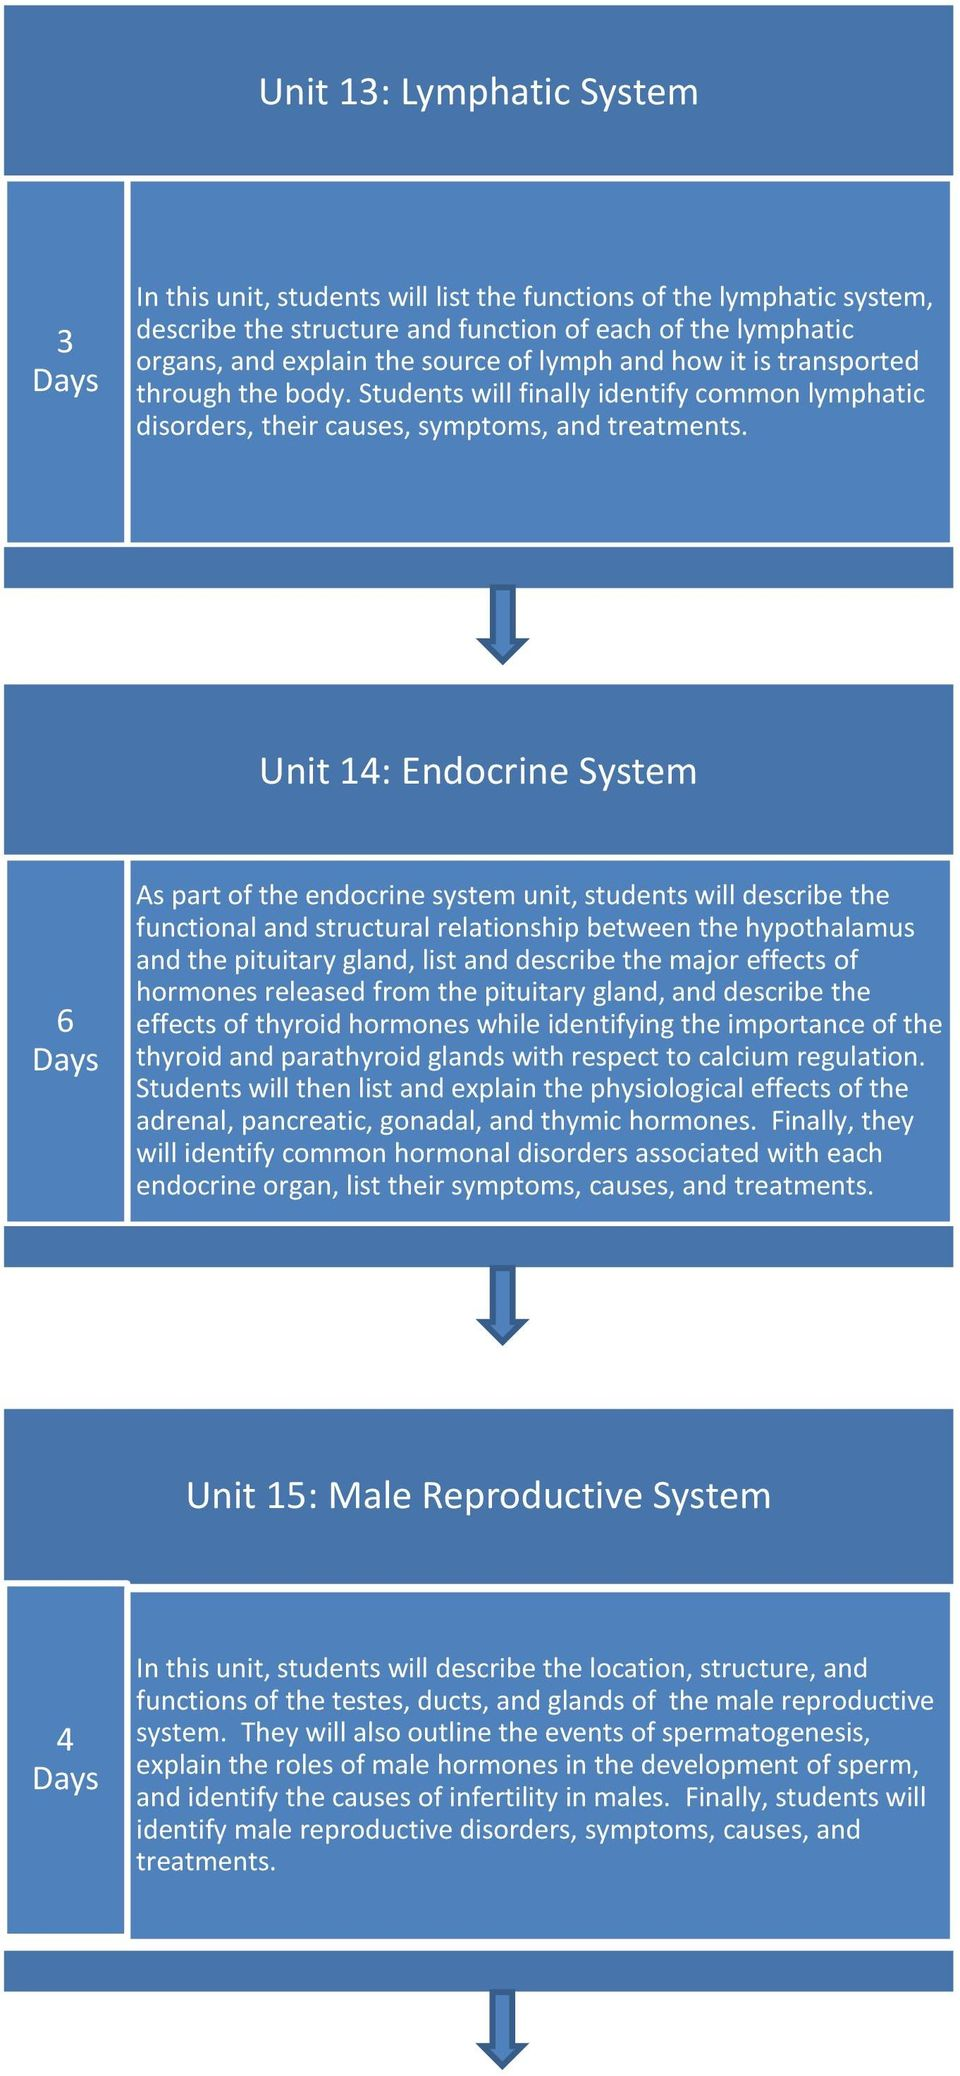 Unit 14: Endocrine System 6 As part of the endocrine system unit, students will describe the functional and structural relationship between the hypothalamus and the pituitary gland, list and describe